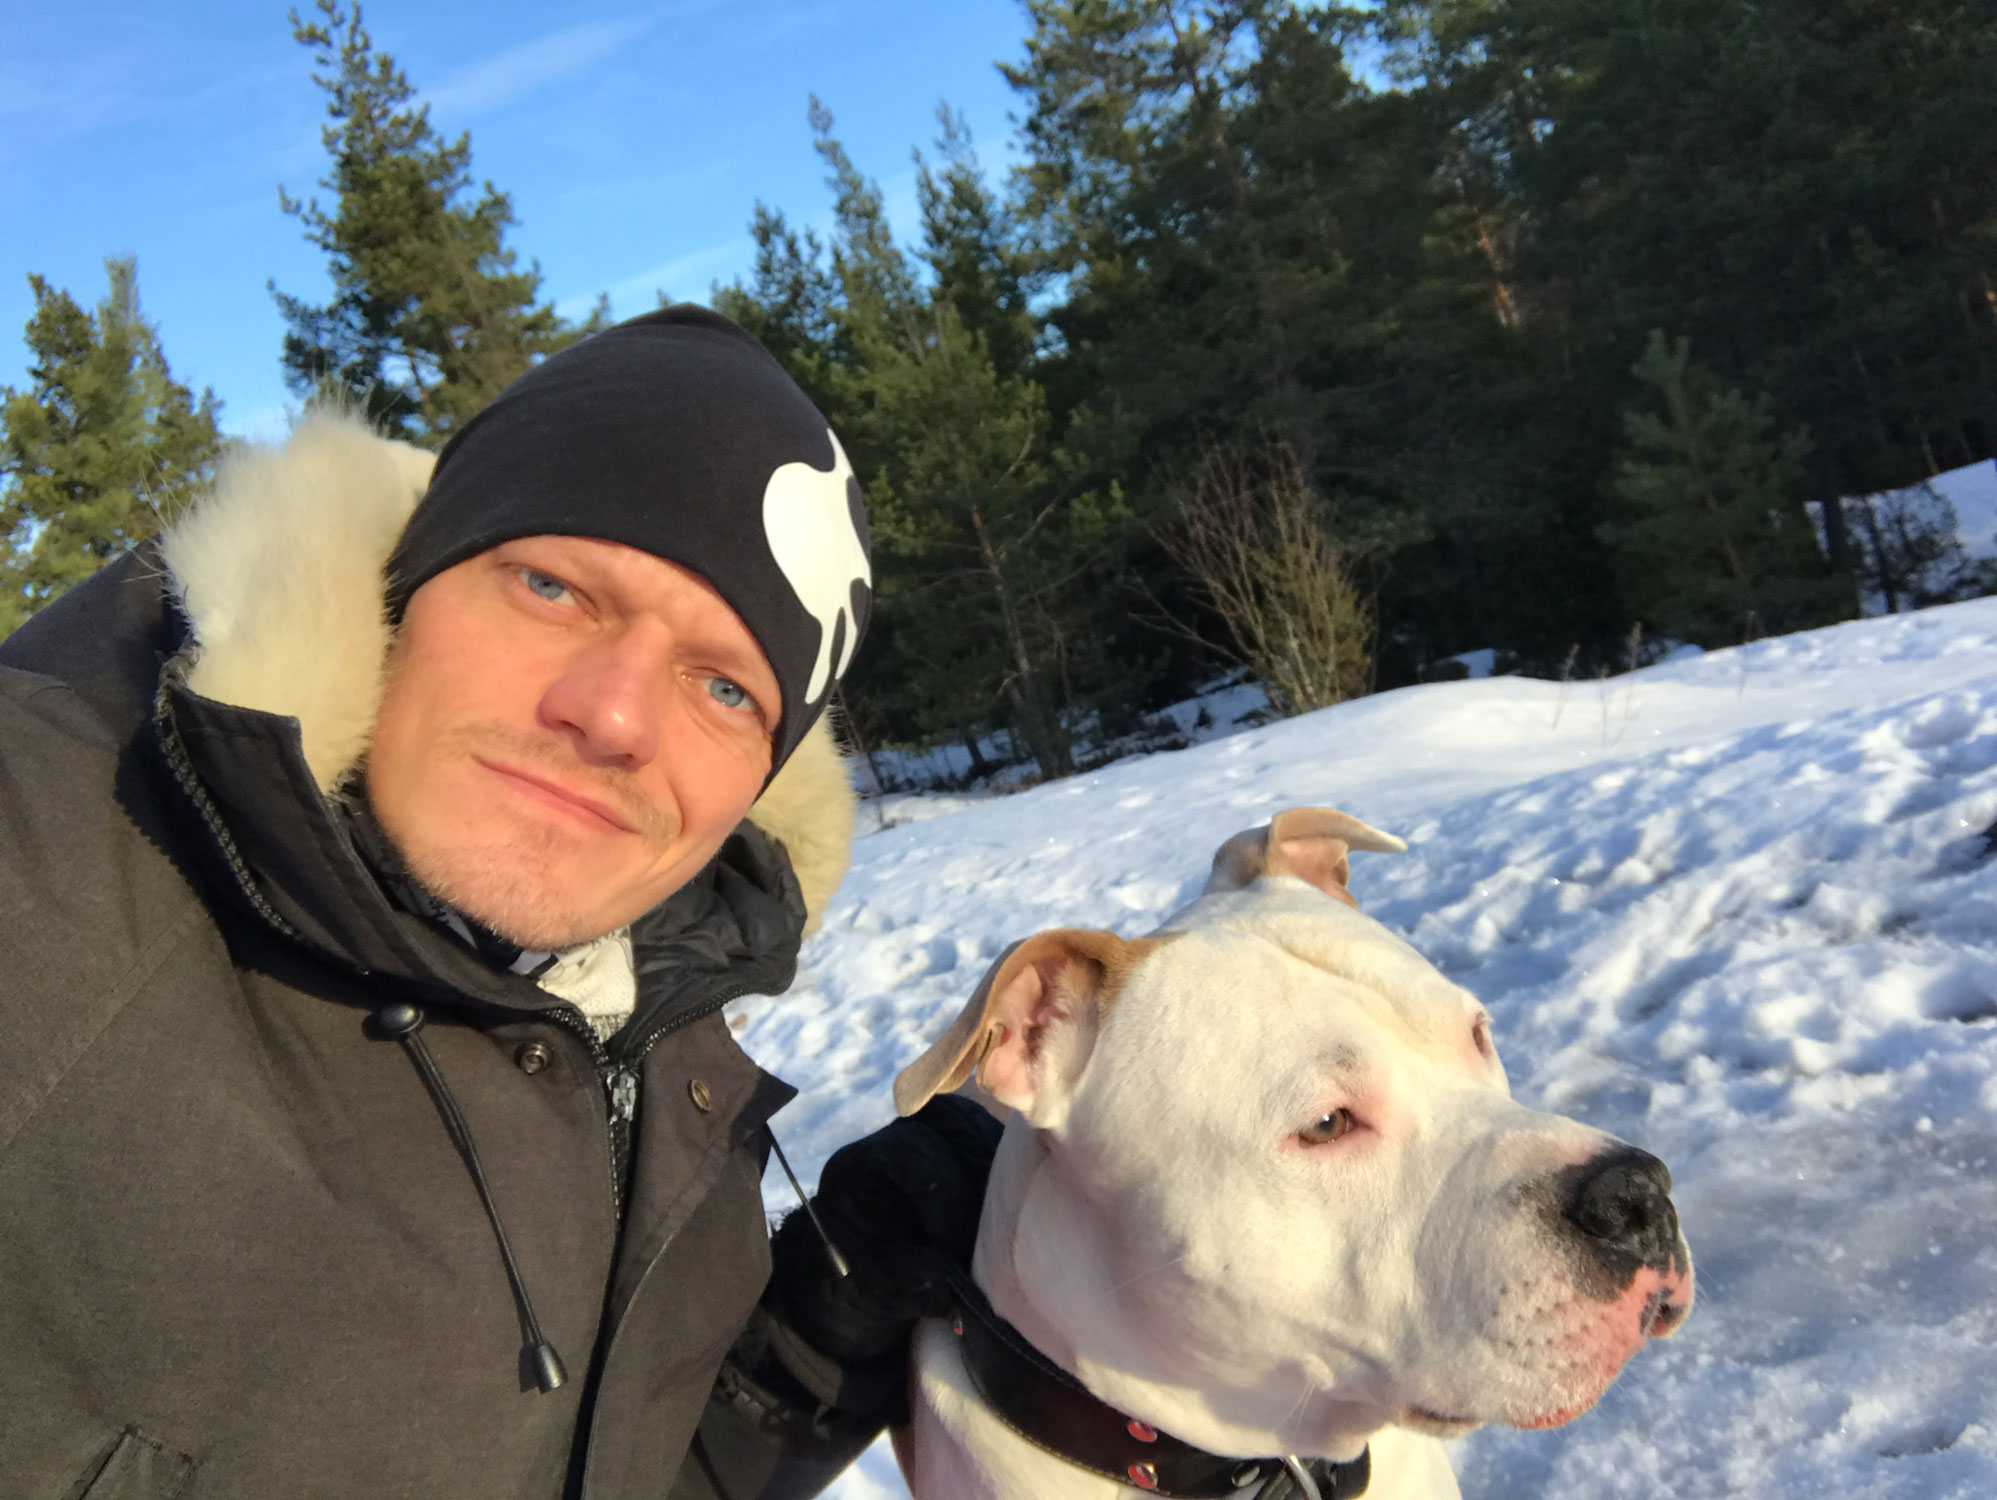 Blog - Me and my dog Ace the amstaff - Screw Them All